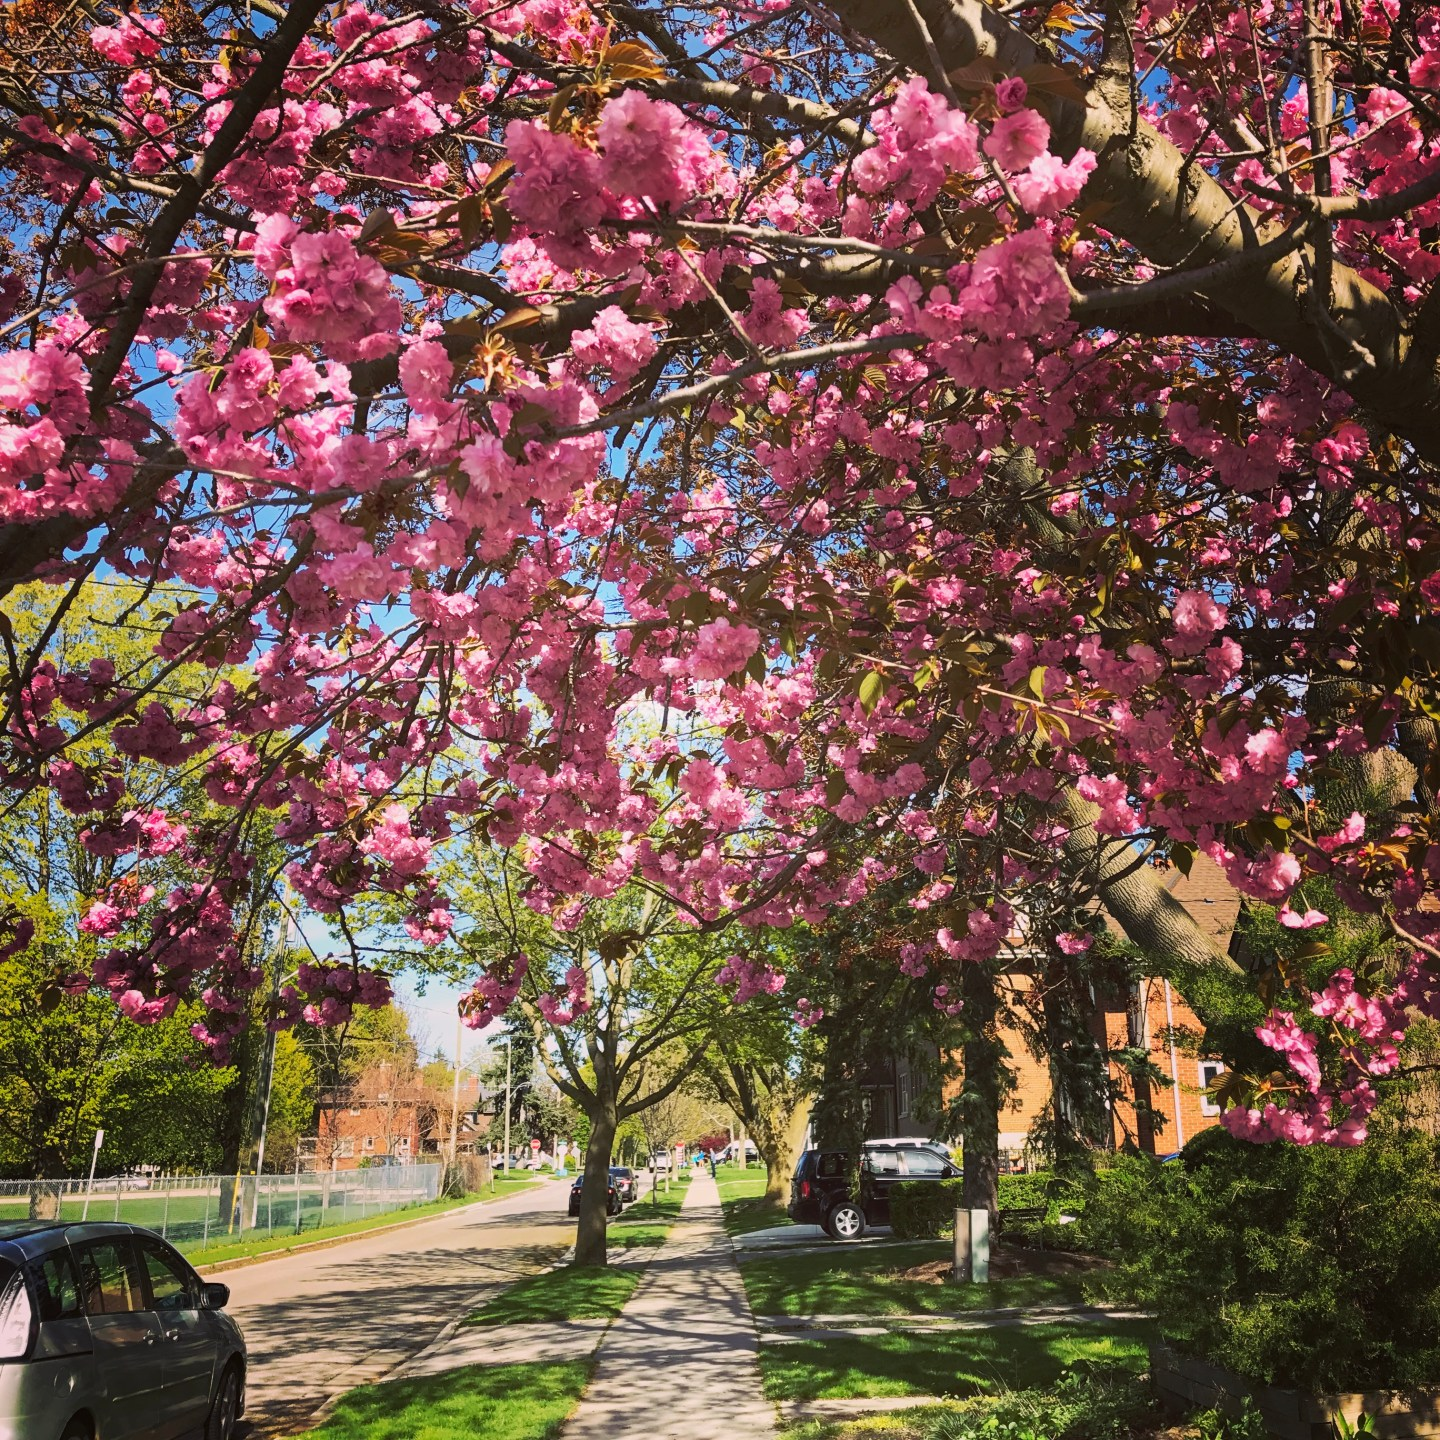 blossoming tree on a peaceful street